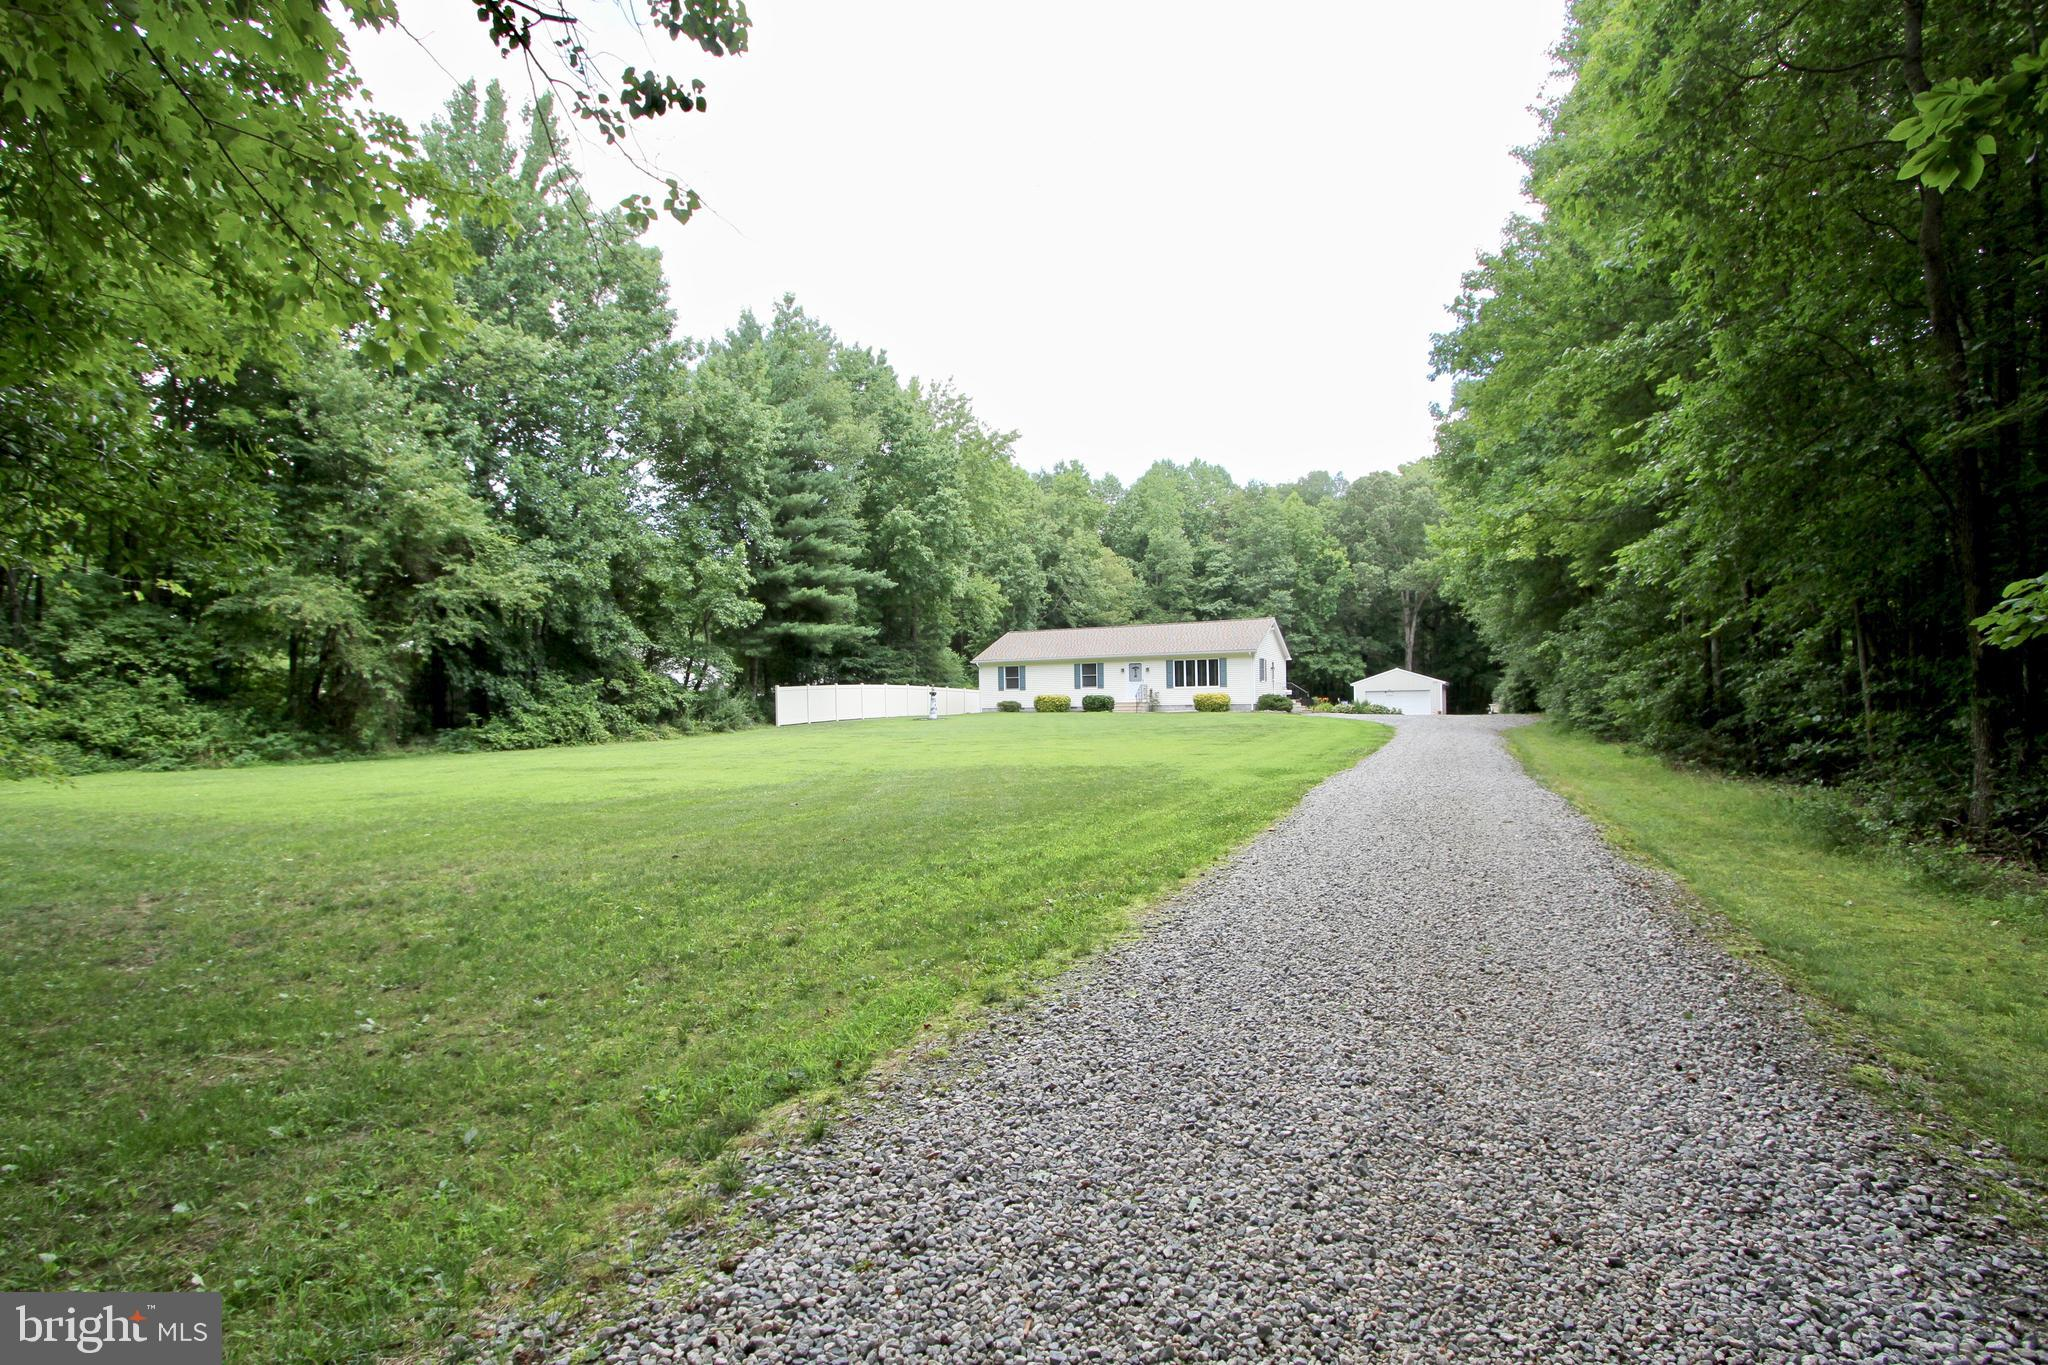 All offers are due to the listing agent by Friday at 7PM WOW!!! Great ranch home is ready for a new owner. Setting on 3 acres and partly wooded.  This home has been undated and nothing to do but move in!! The country kitchen has a breakfast bar, a large eating area and just outside is a beautiful deck with a sun setter awning.  There is a spacious living room and three nice size bedrooms. One bedroom has a Murphy bed for guest or  tuck it away for a roomy office. The 3rd bedroom is used as a man cave. A cheerful main bedroom has it's own bath with a large shower or step out the doorway to a private hot tub. The back yard sports an awesome screened gazebo for entertaining! There is a detached 2 car garage just before you enter the wooded area. Ride the trails and enjoy the rabbits, squirrels, birds and often a deer. This is a wonderland delight !!!!